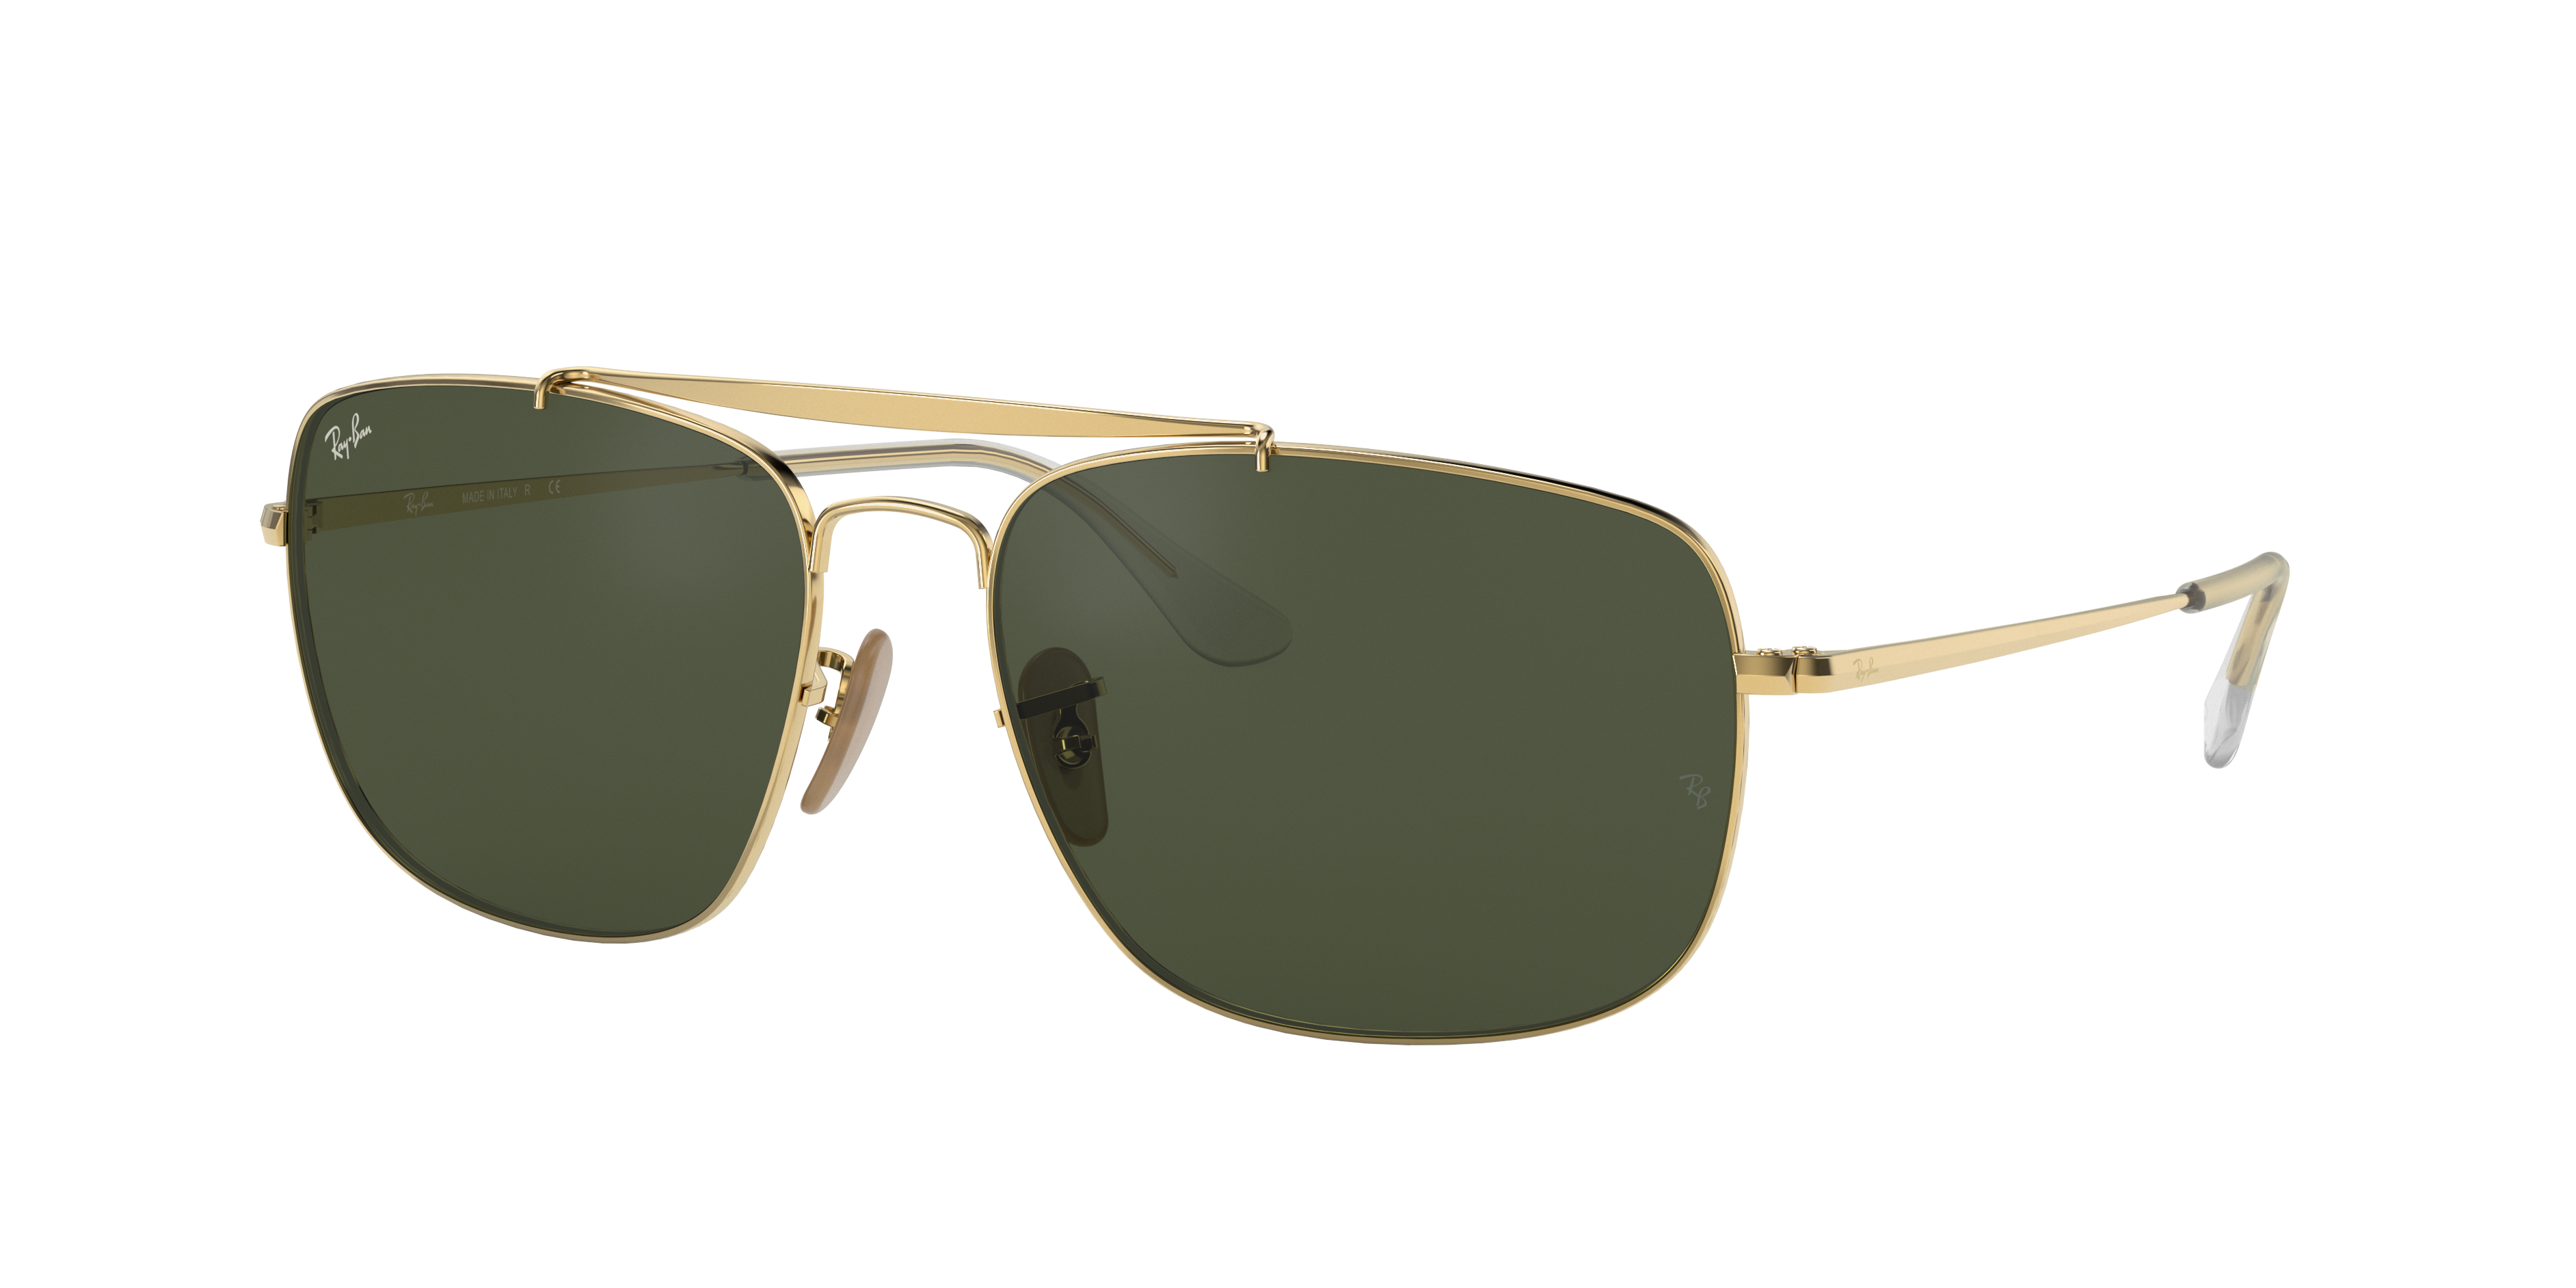 Ray-Ban Colonel Gold, Green Lenses - RB3560